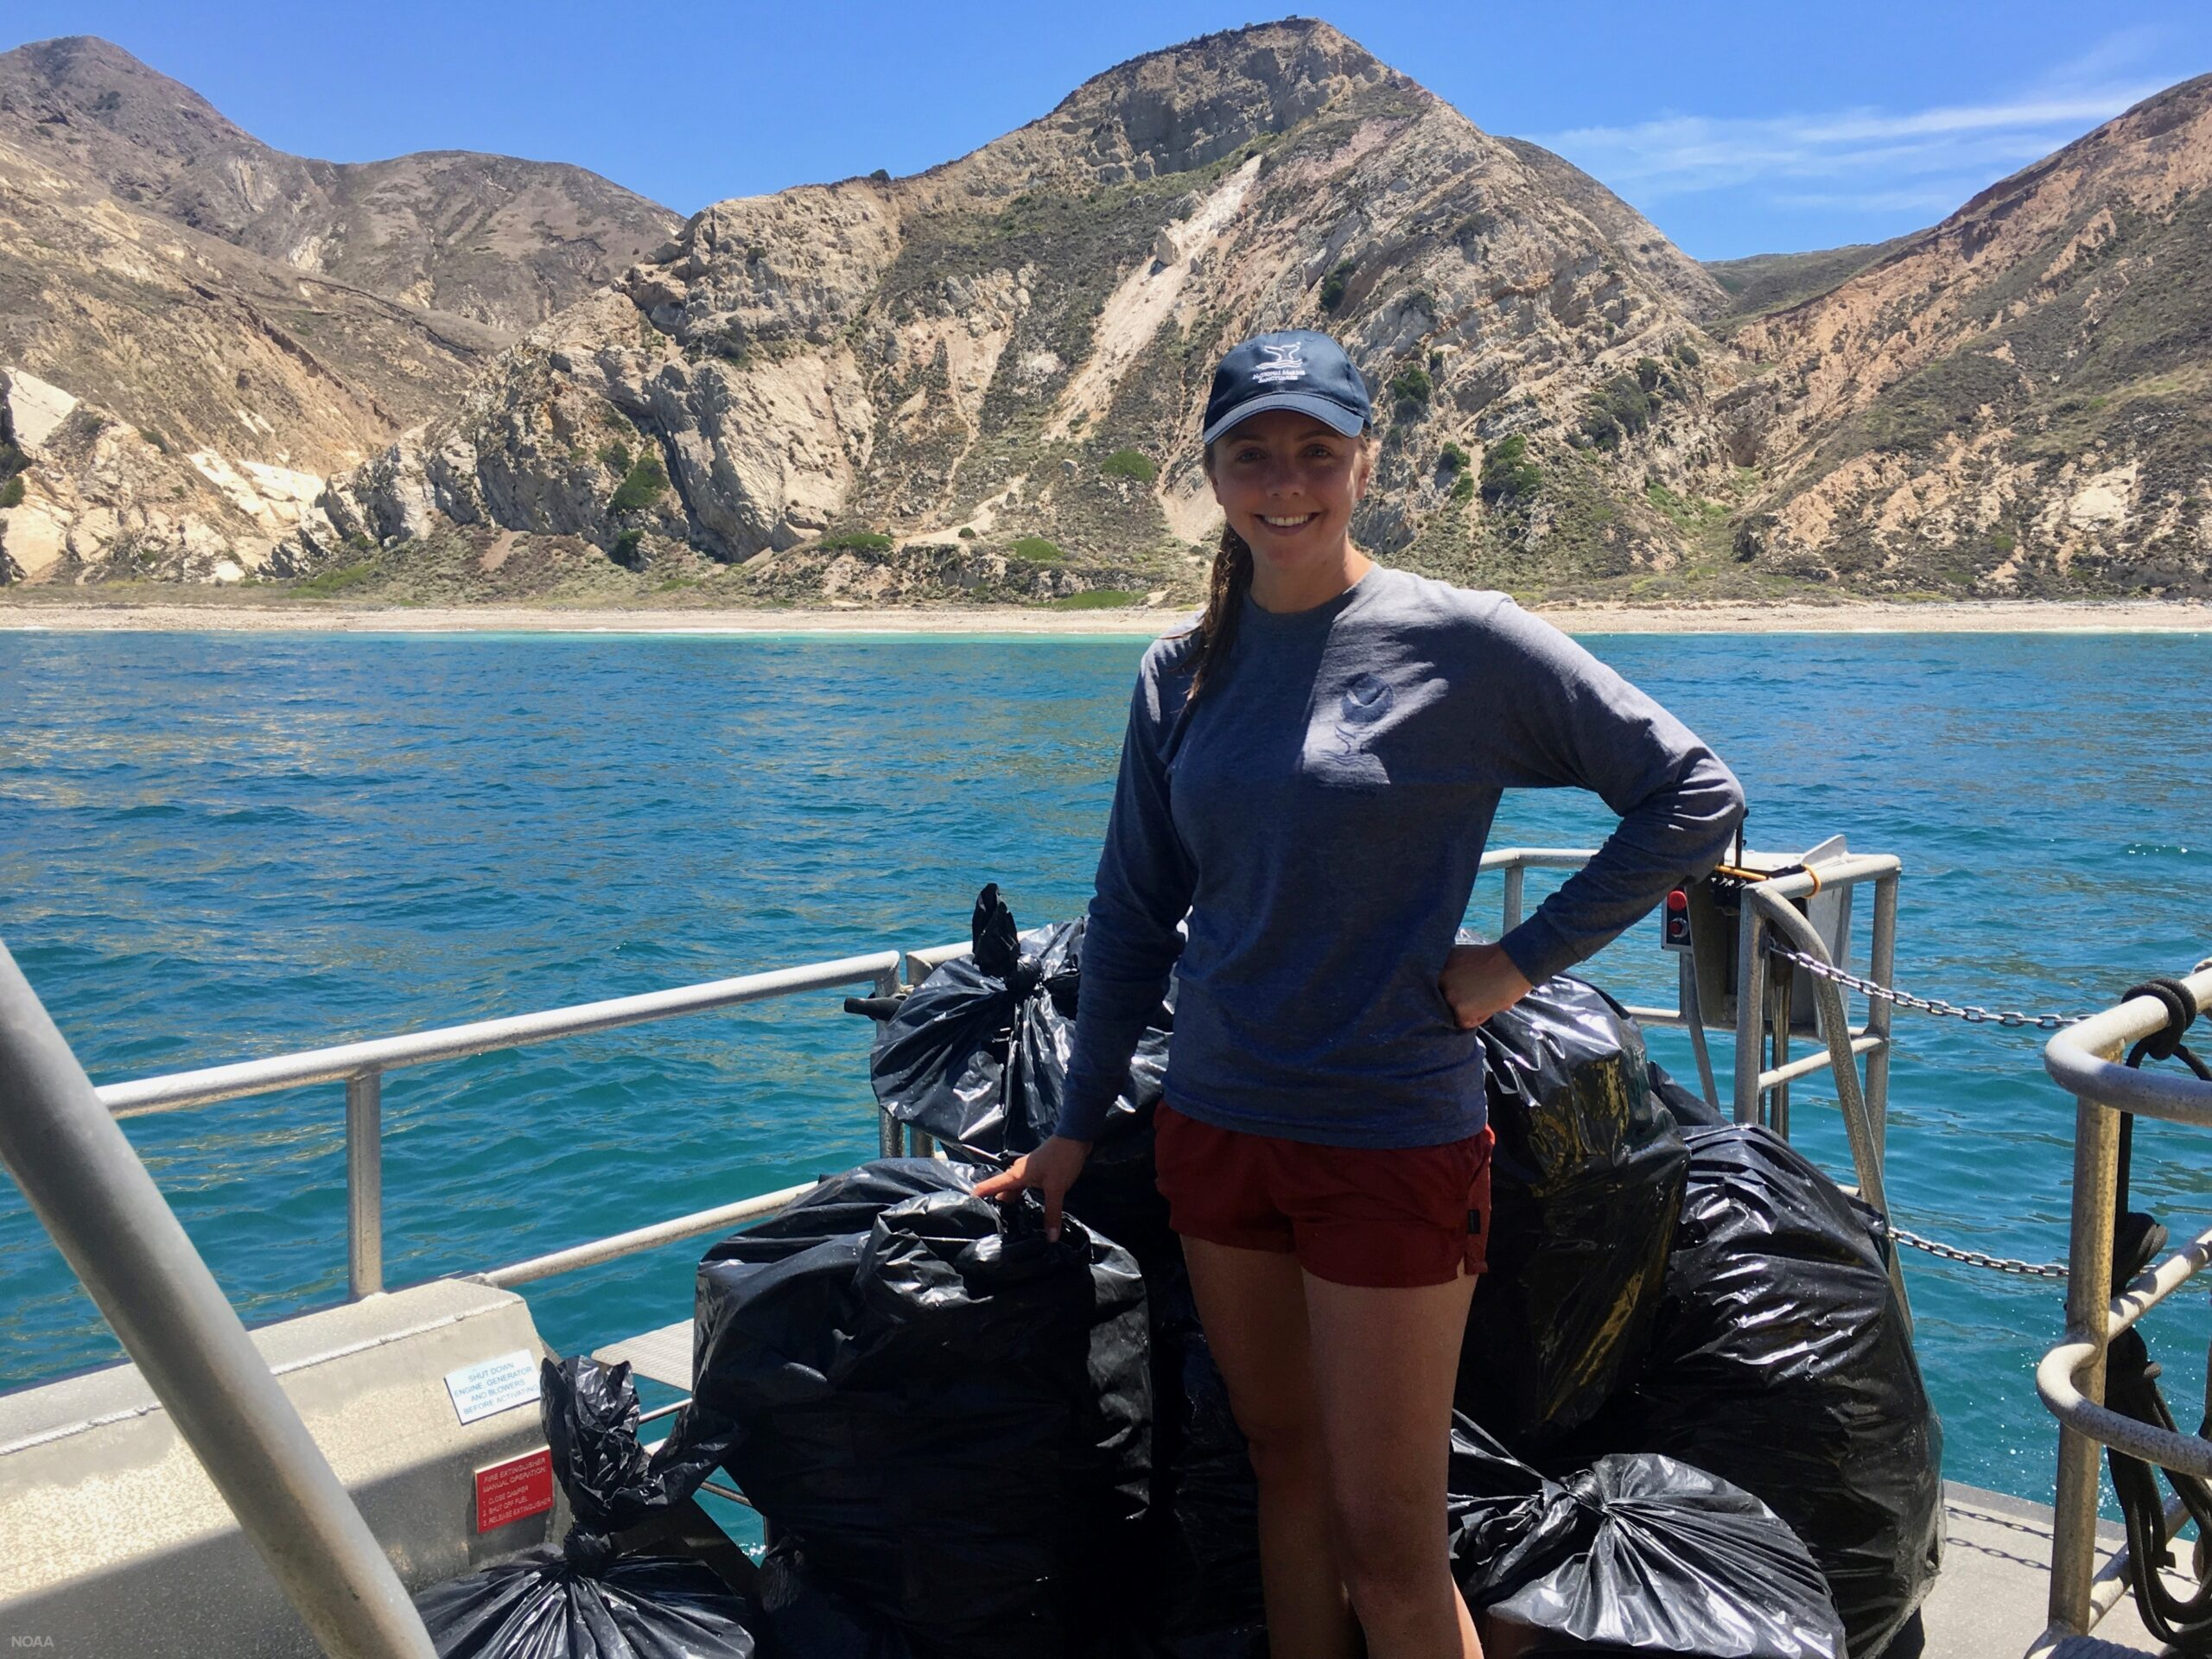 Laura Ingulsrud coordinates a shoreline cleanup on Santa Cruz Island as part of her internship with the Channel Islands National Marine Sanctuary.